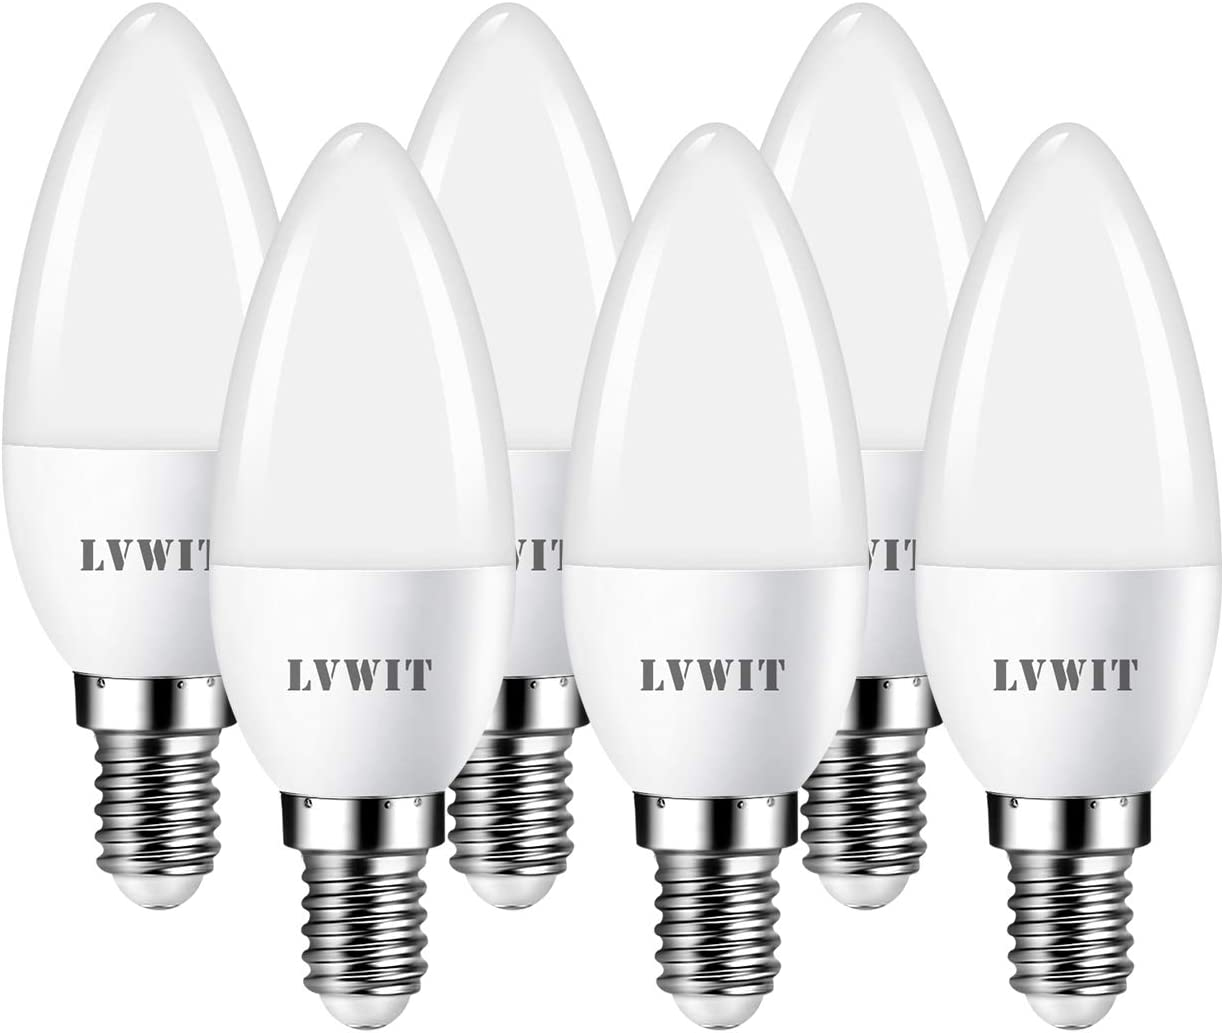 LVWIT Bombillas LED Vela E14 (Casquillo Fino) - 5W equivalente a 40W, 470 lúmenes, Color blanco frío 6500K, No regulable - Pack de 6 Unidades. (View amazon detail page)